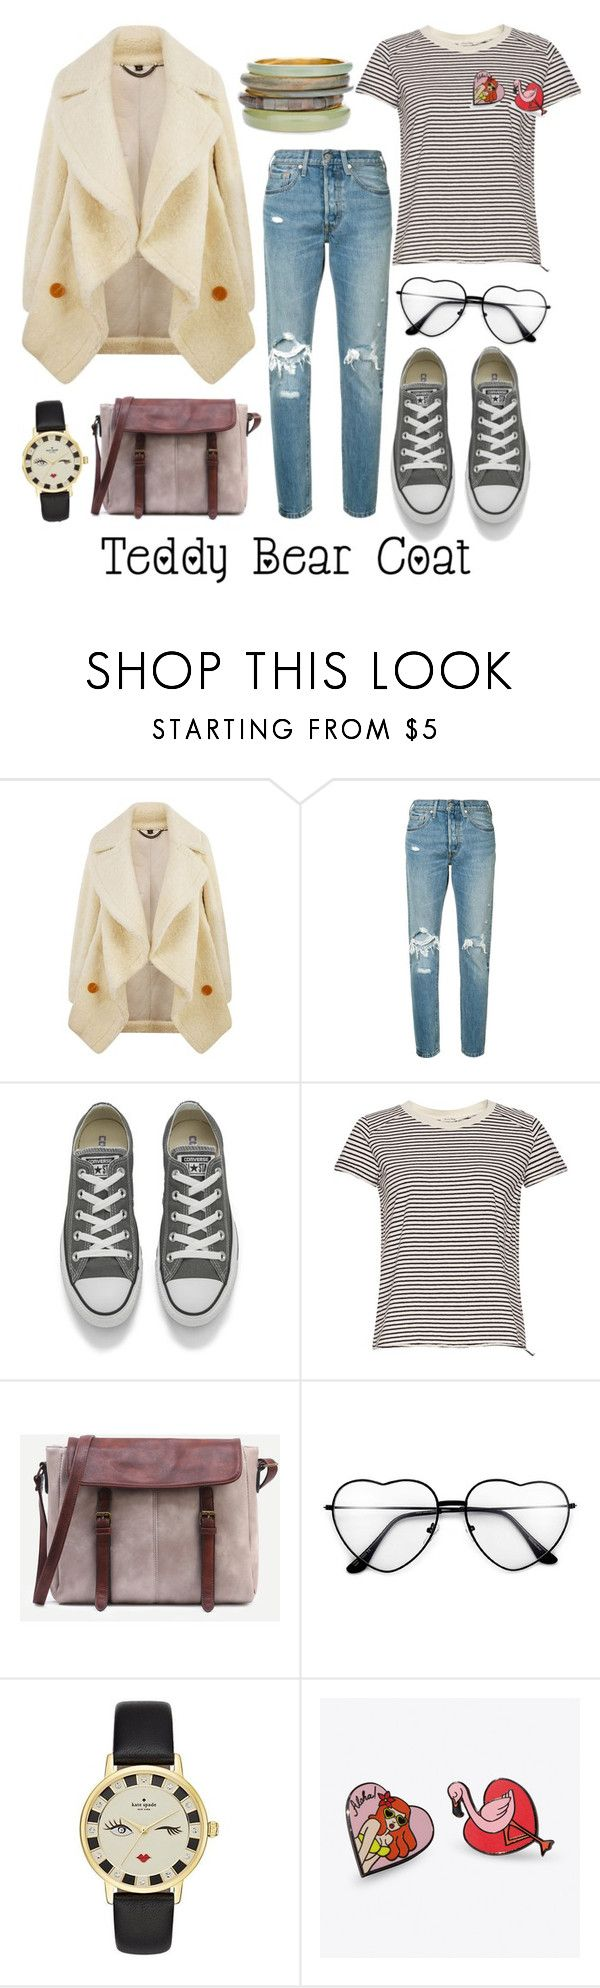 """Untitled #65"" by lucia-khewhedinoh-marchi ❤ liked on Polyvore featuring Burberry, Levi's, Converse, Kate Spade, Punky Pins and Chico's"